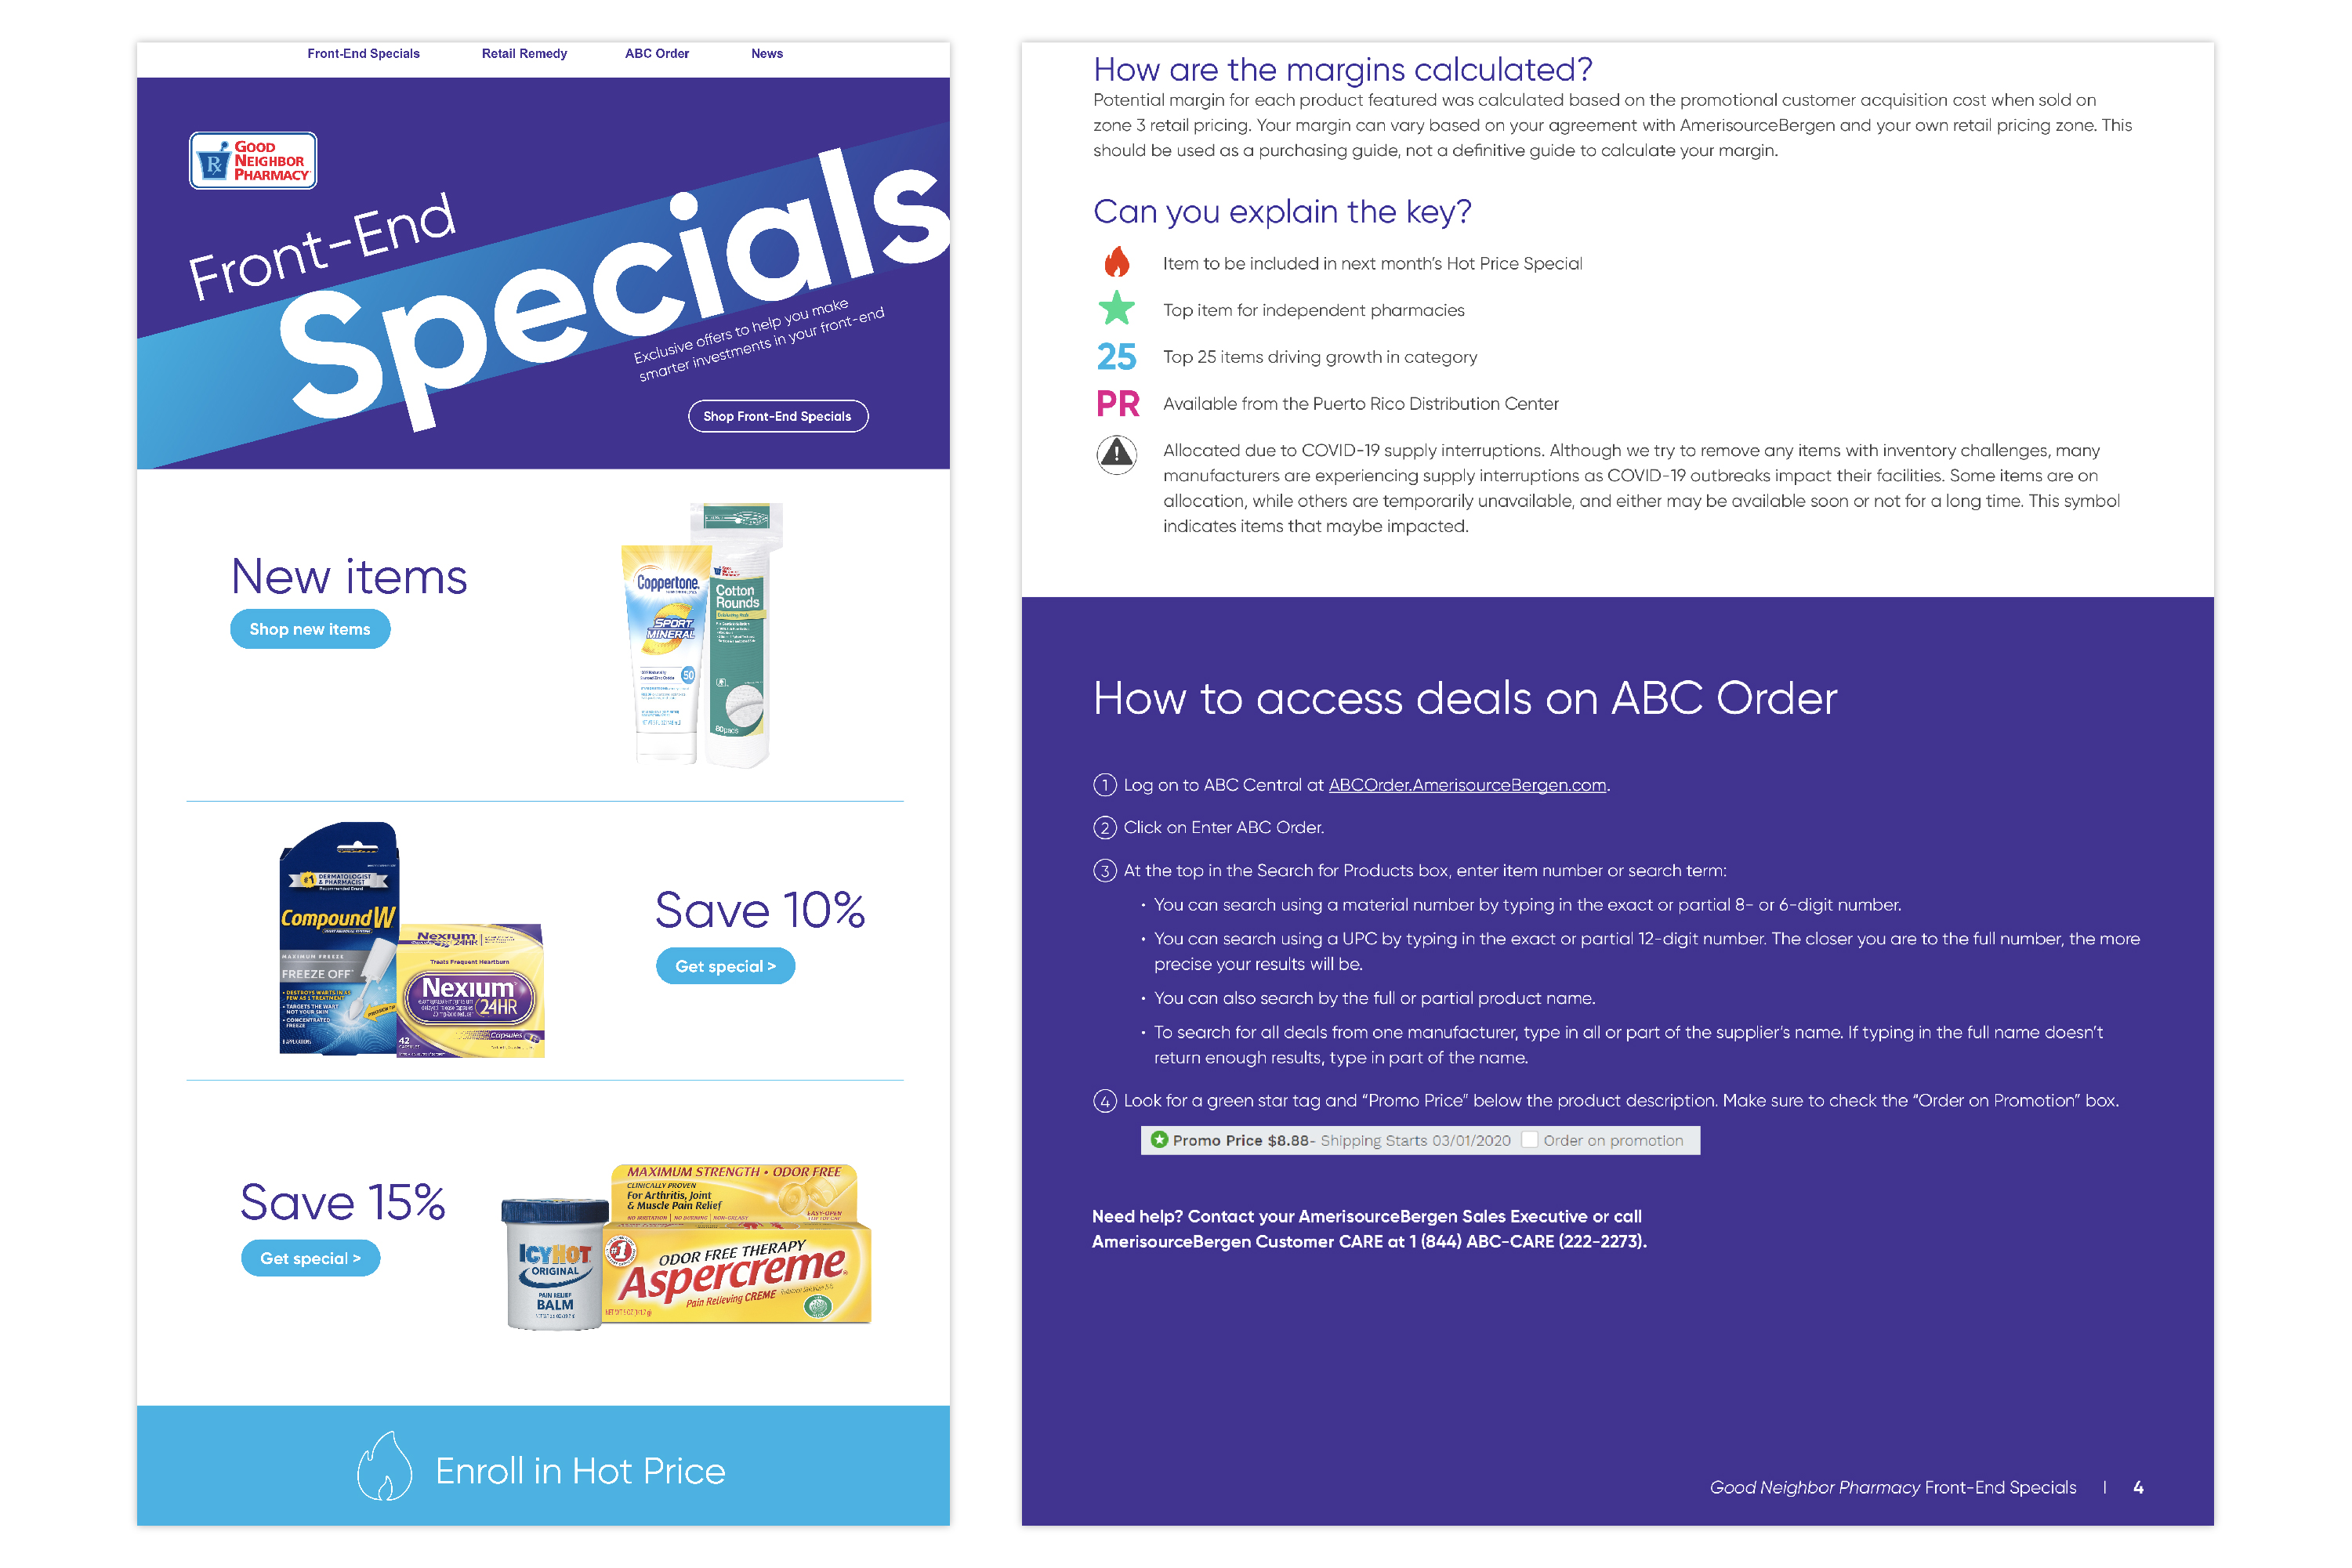 Good Neighbor Pharmacy Front-End Specials Email